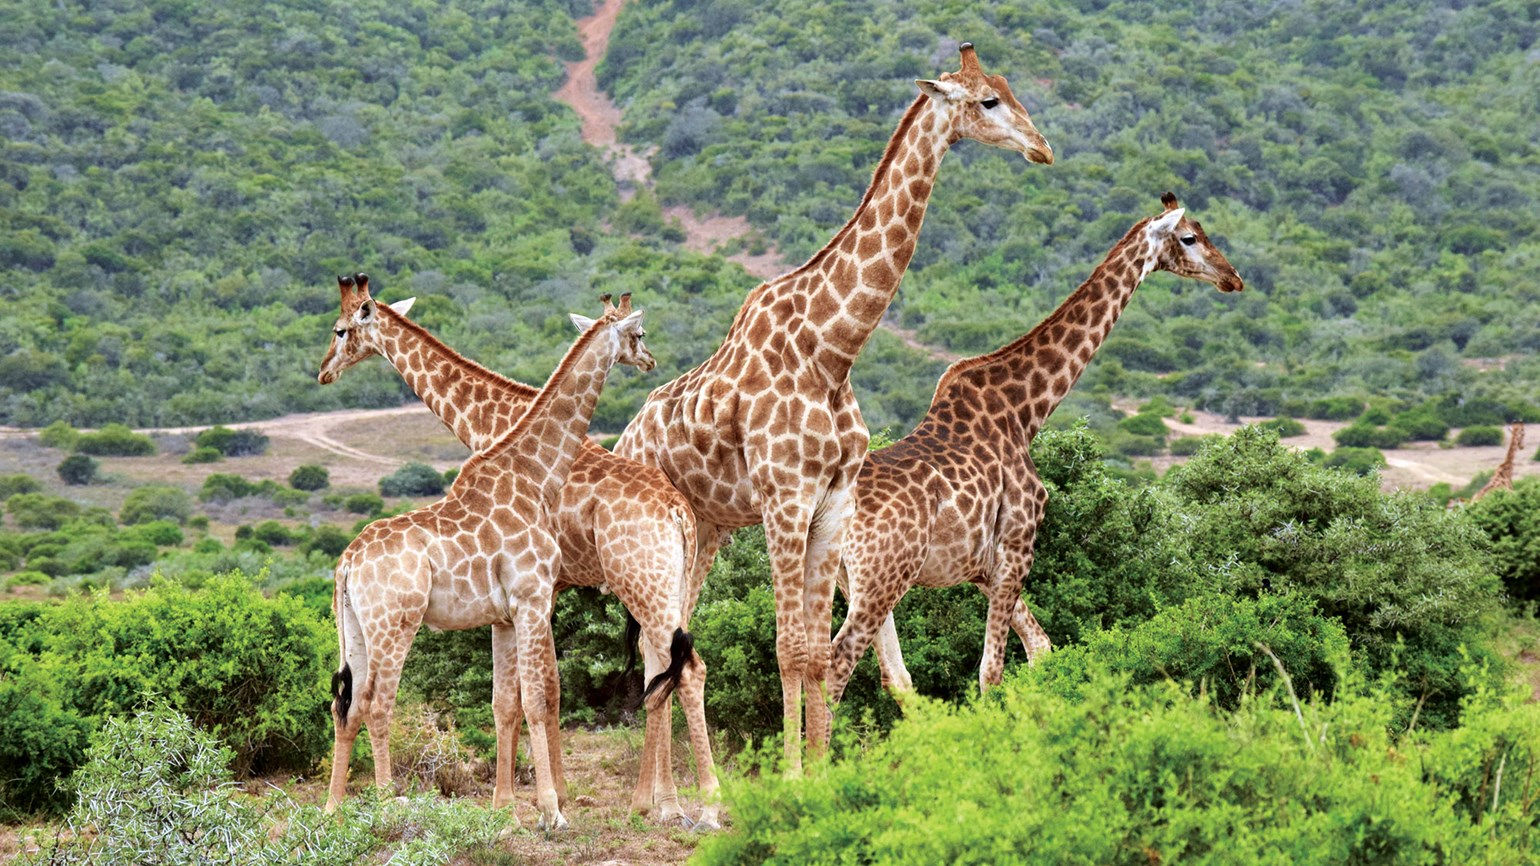 Safari in harmony at Shamwari Game Reserve